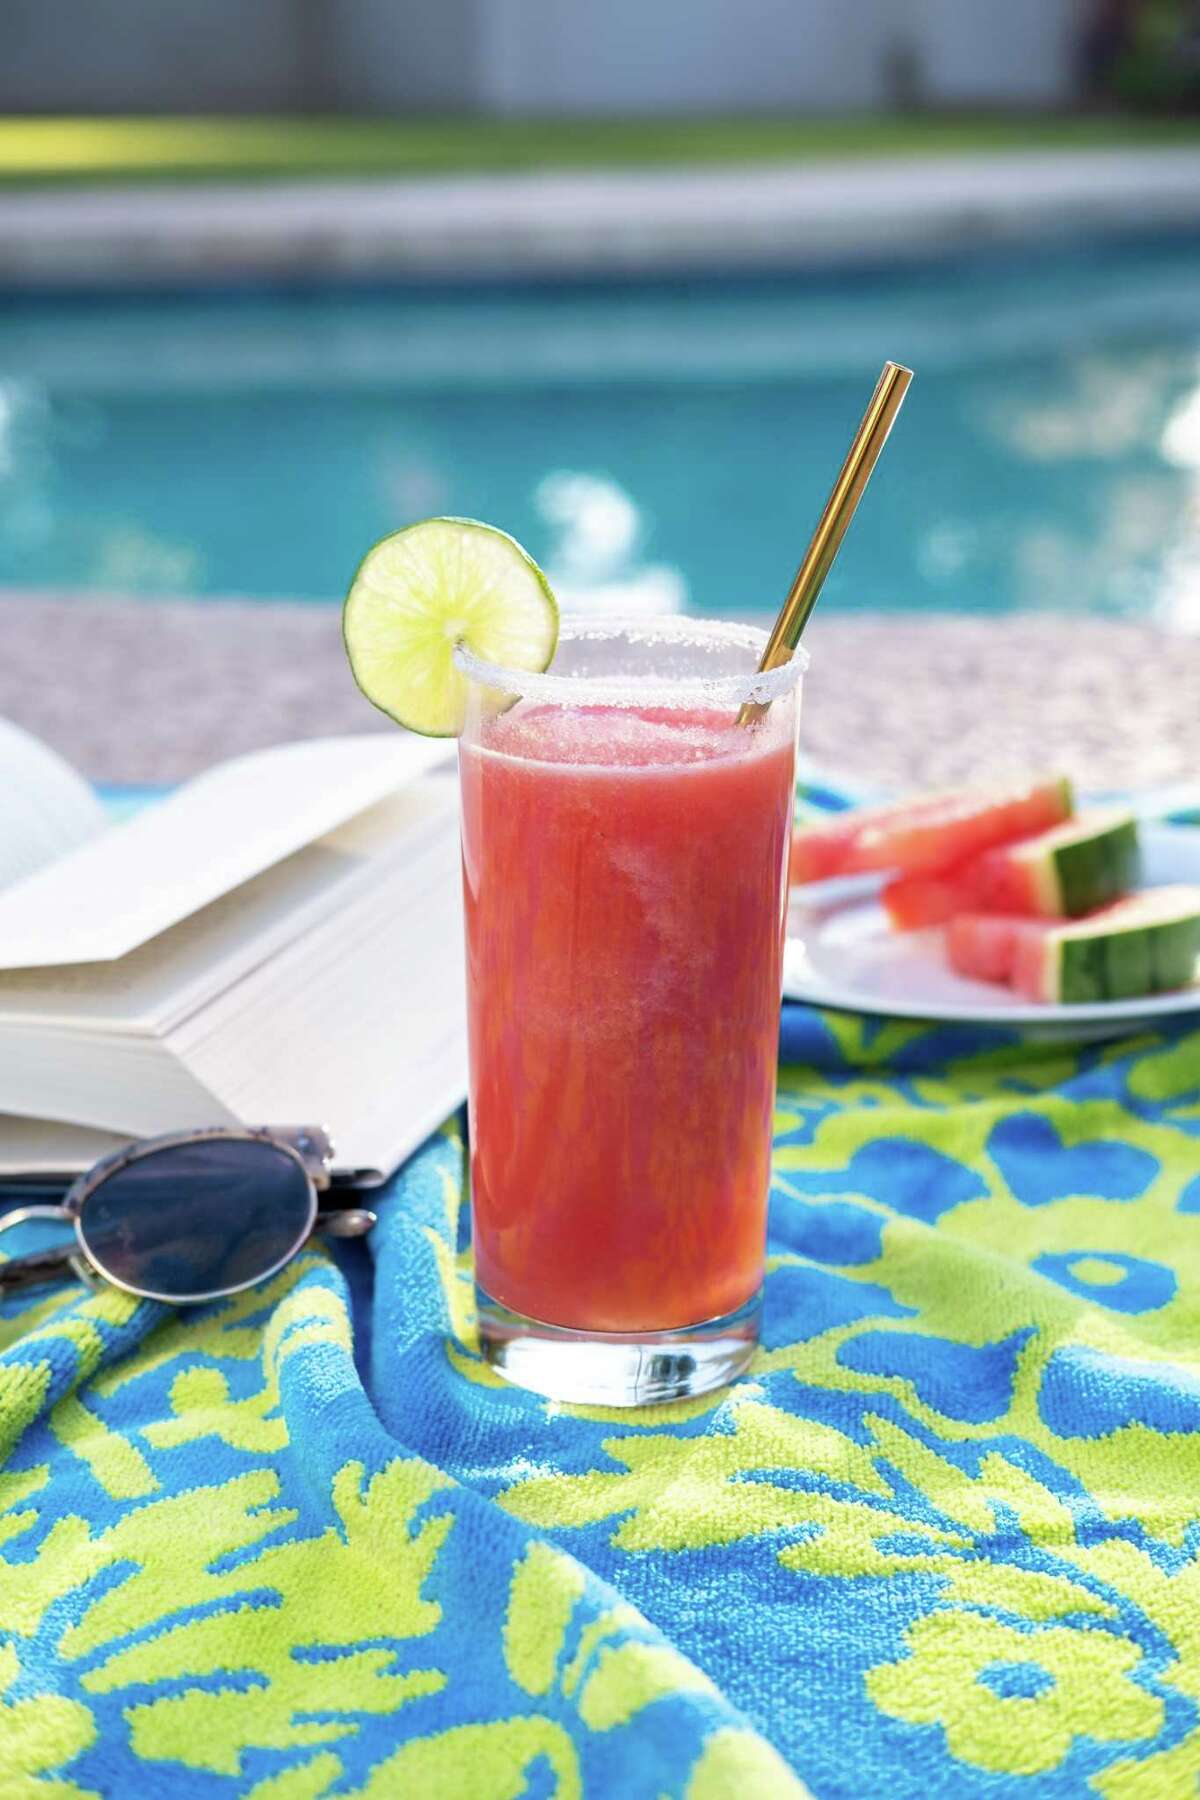 """The Watermelon Sugar Slushy from """"The Hard Seltzer Cocktail Book: 55 Unofficial Recipes for White Claw Slushies, Truly Mixers, and More Spiked-Seltzer Drinks"""" (Ulysses Press) by Casie Vogel."""